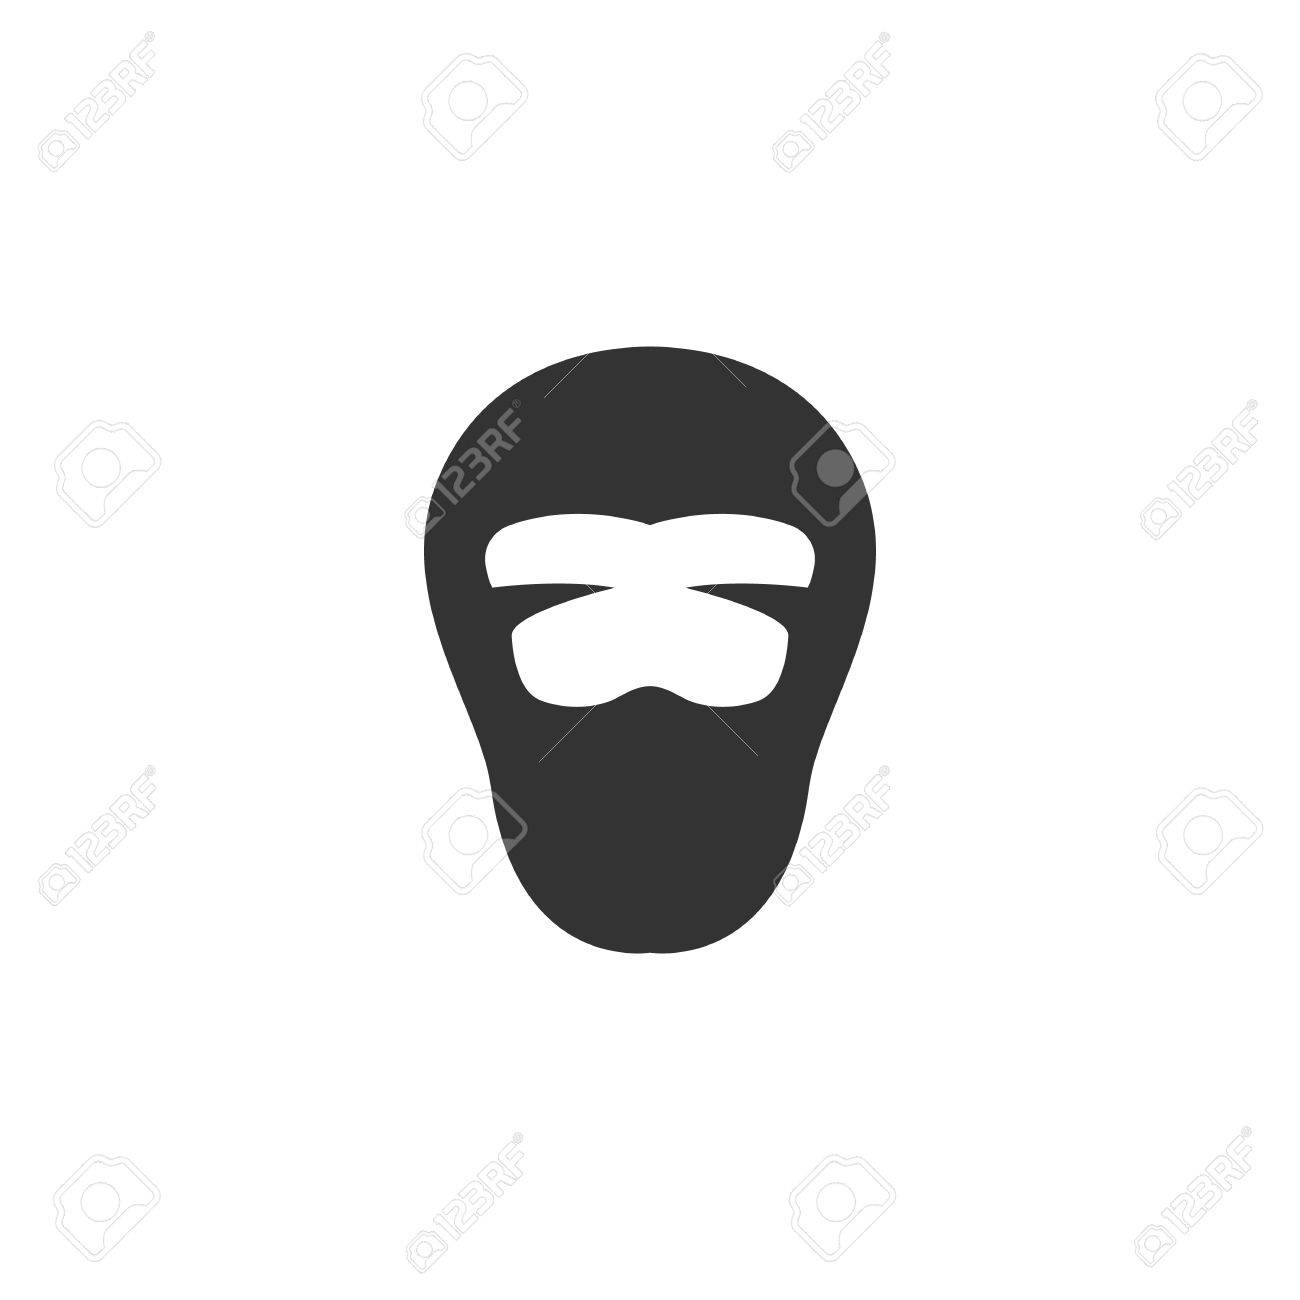 ninja logo silhouette design template isolated on a white background